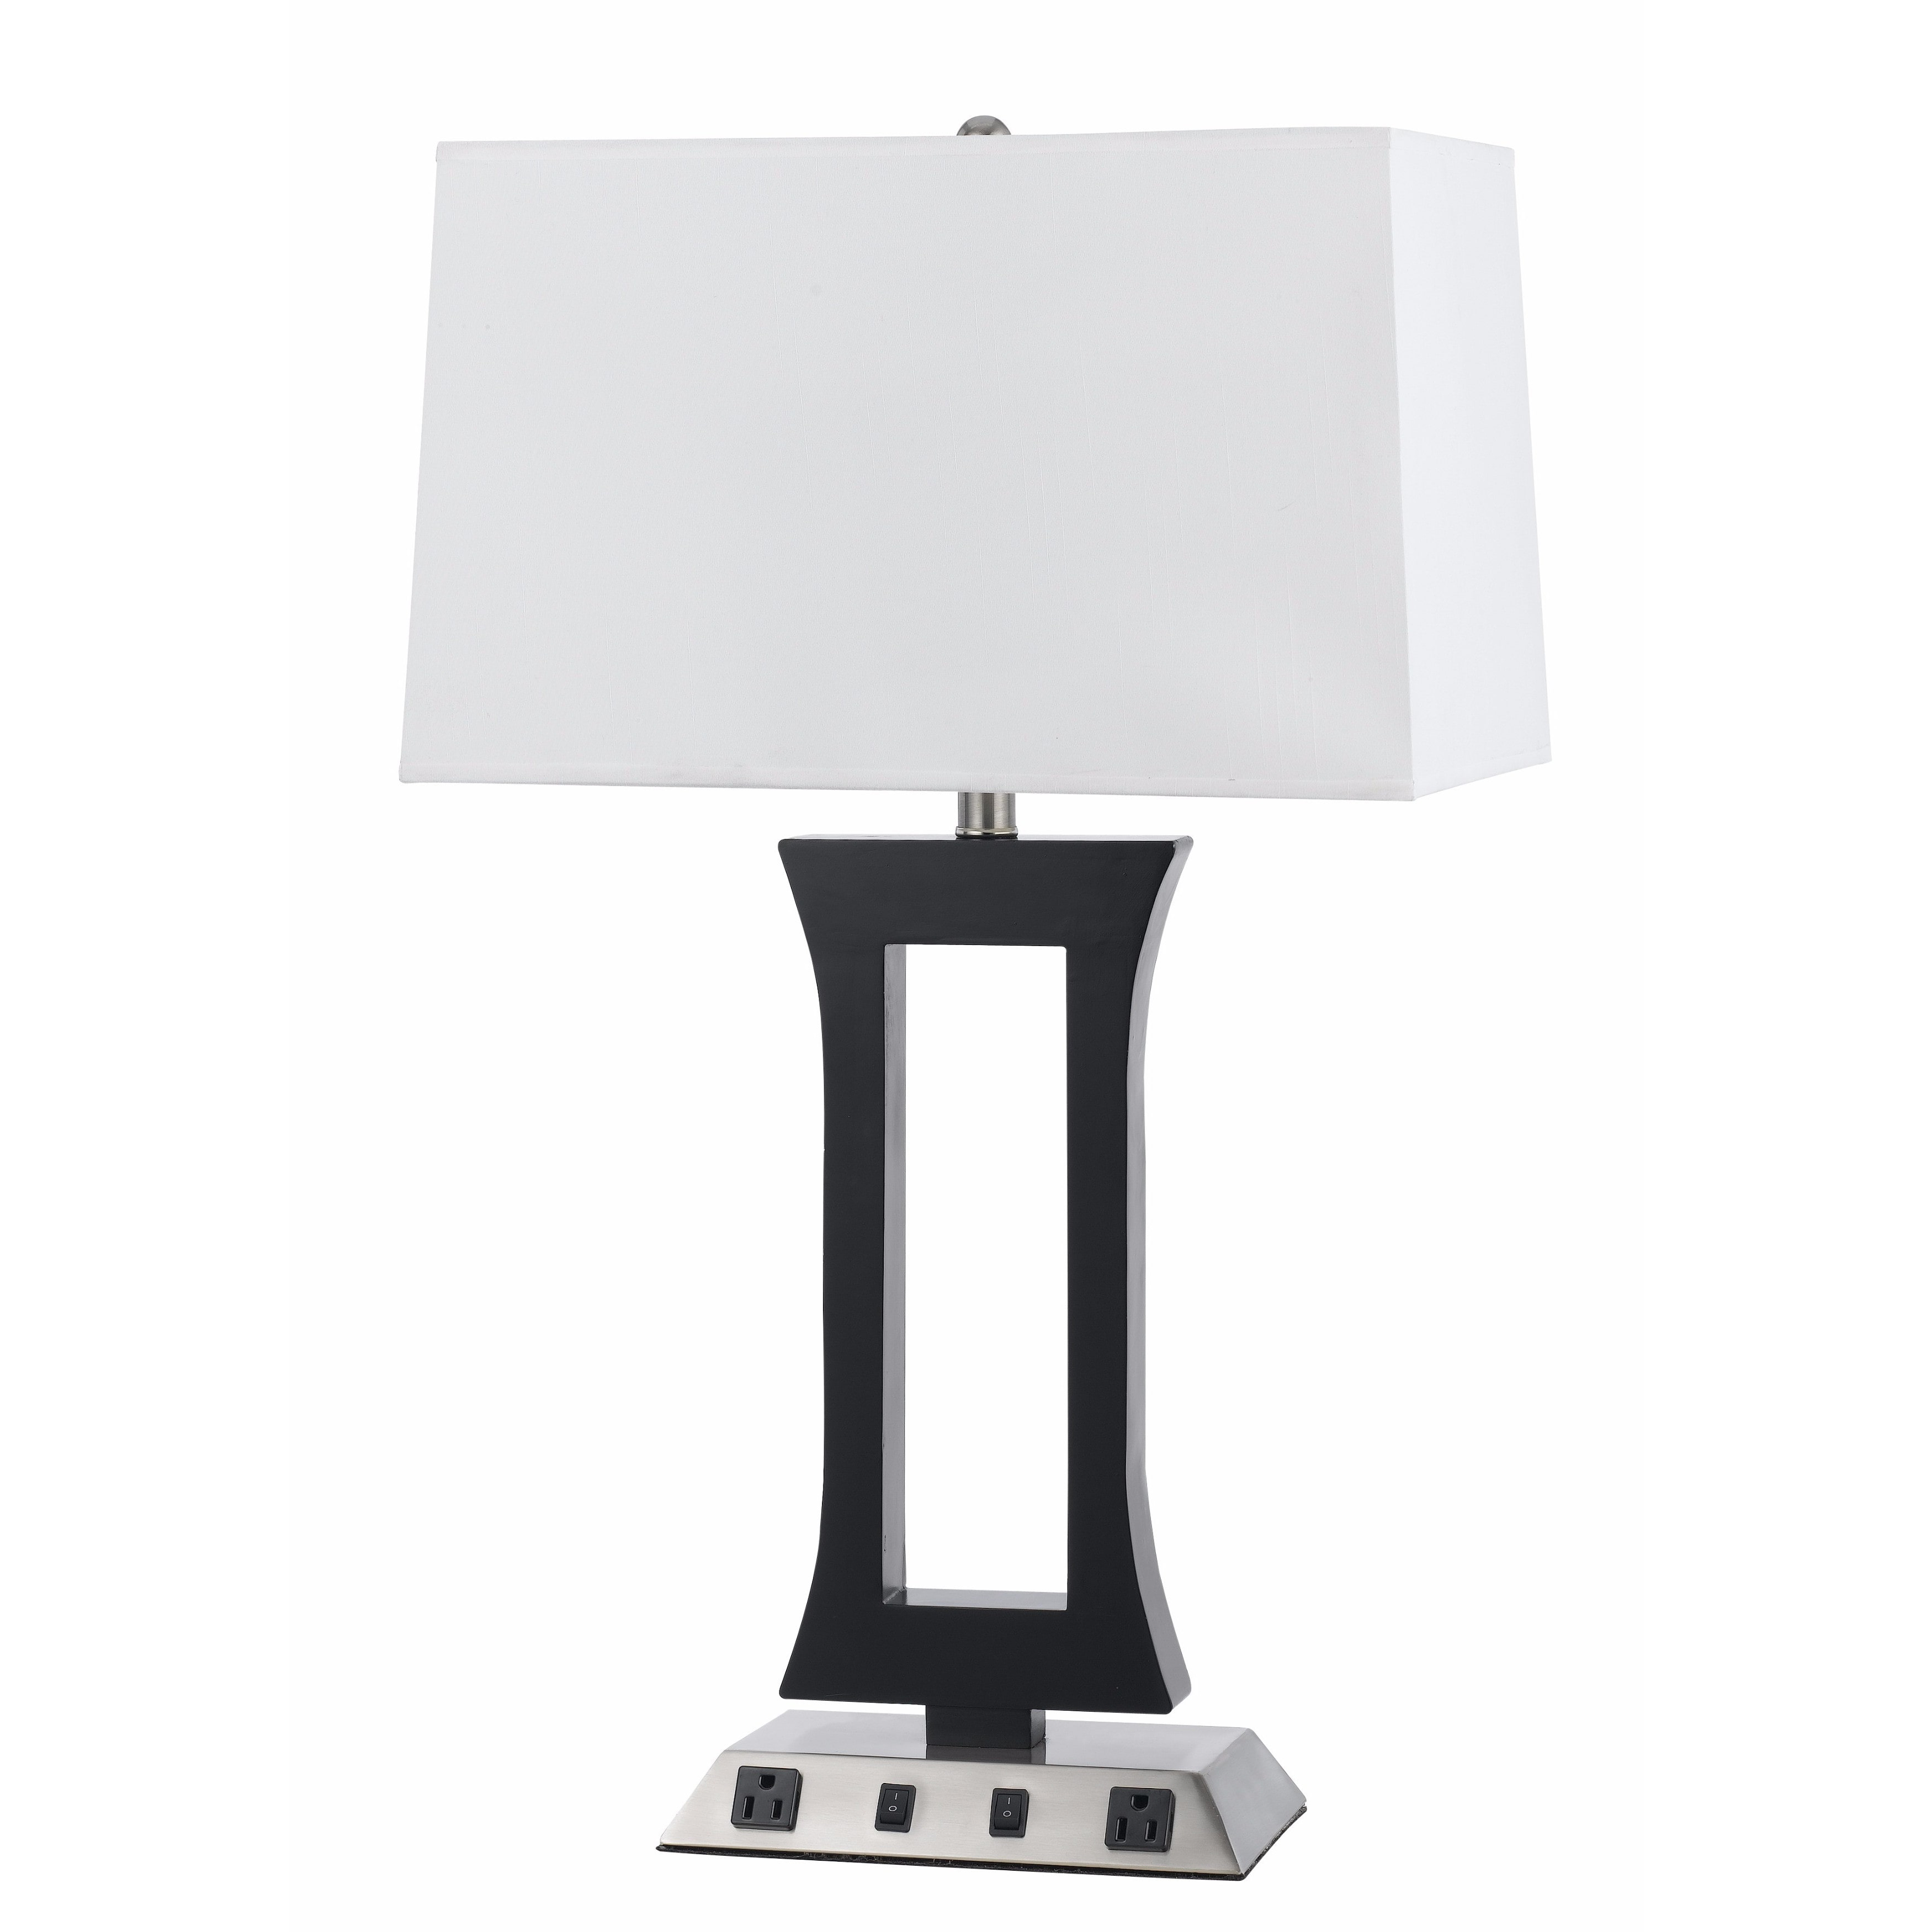 Cal Lighting Black and Silvertone Metal 60-watt Lamp with White Shade and Two Outlets by Overstock